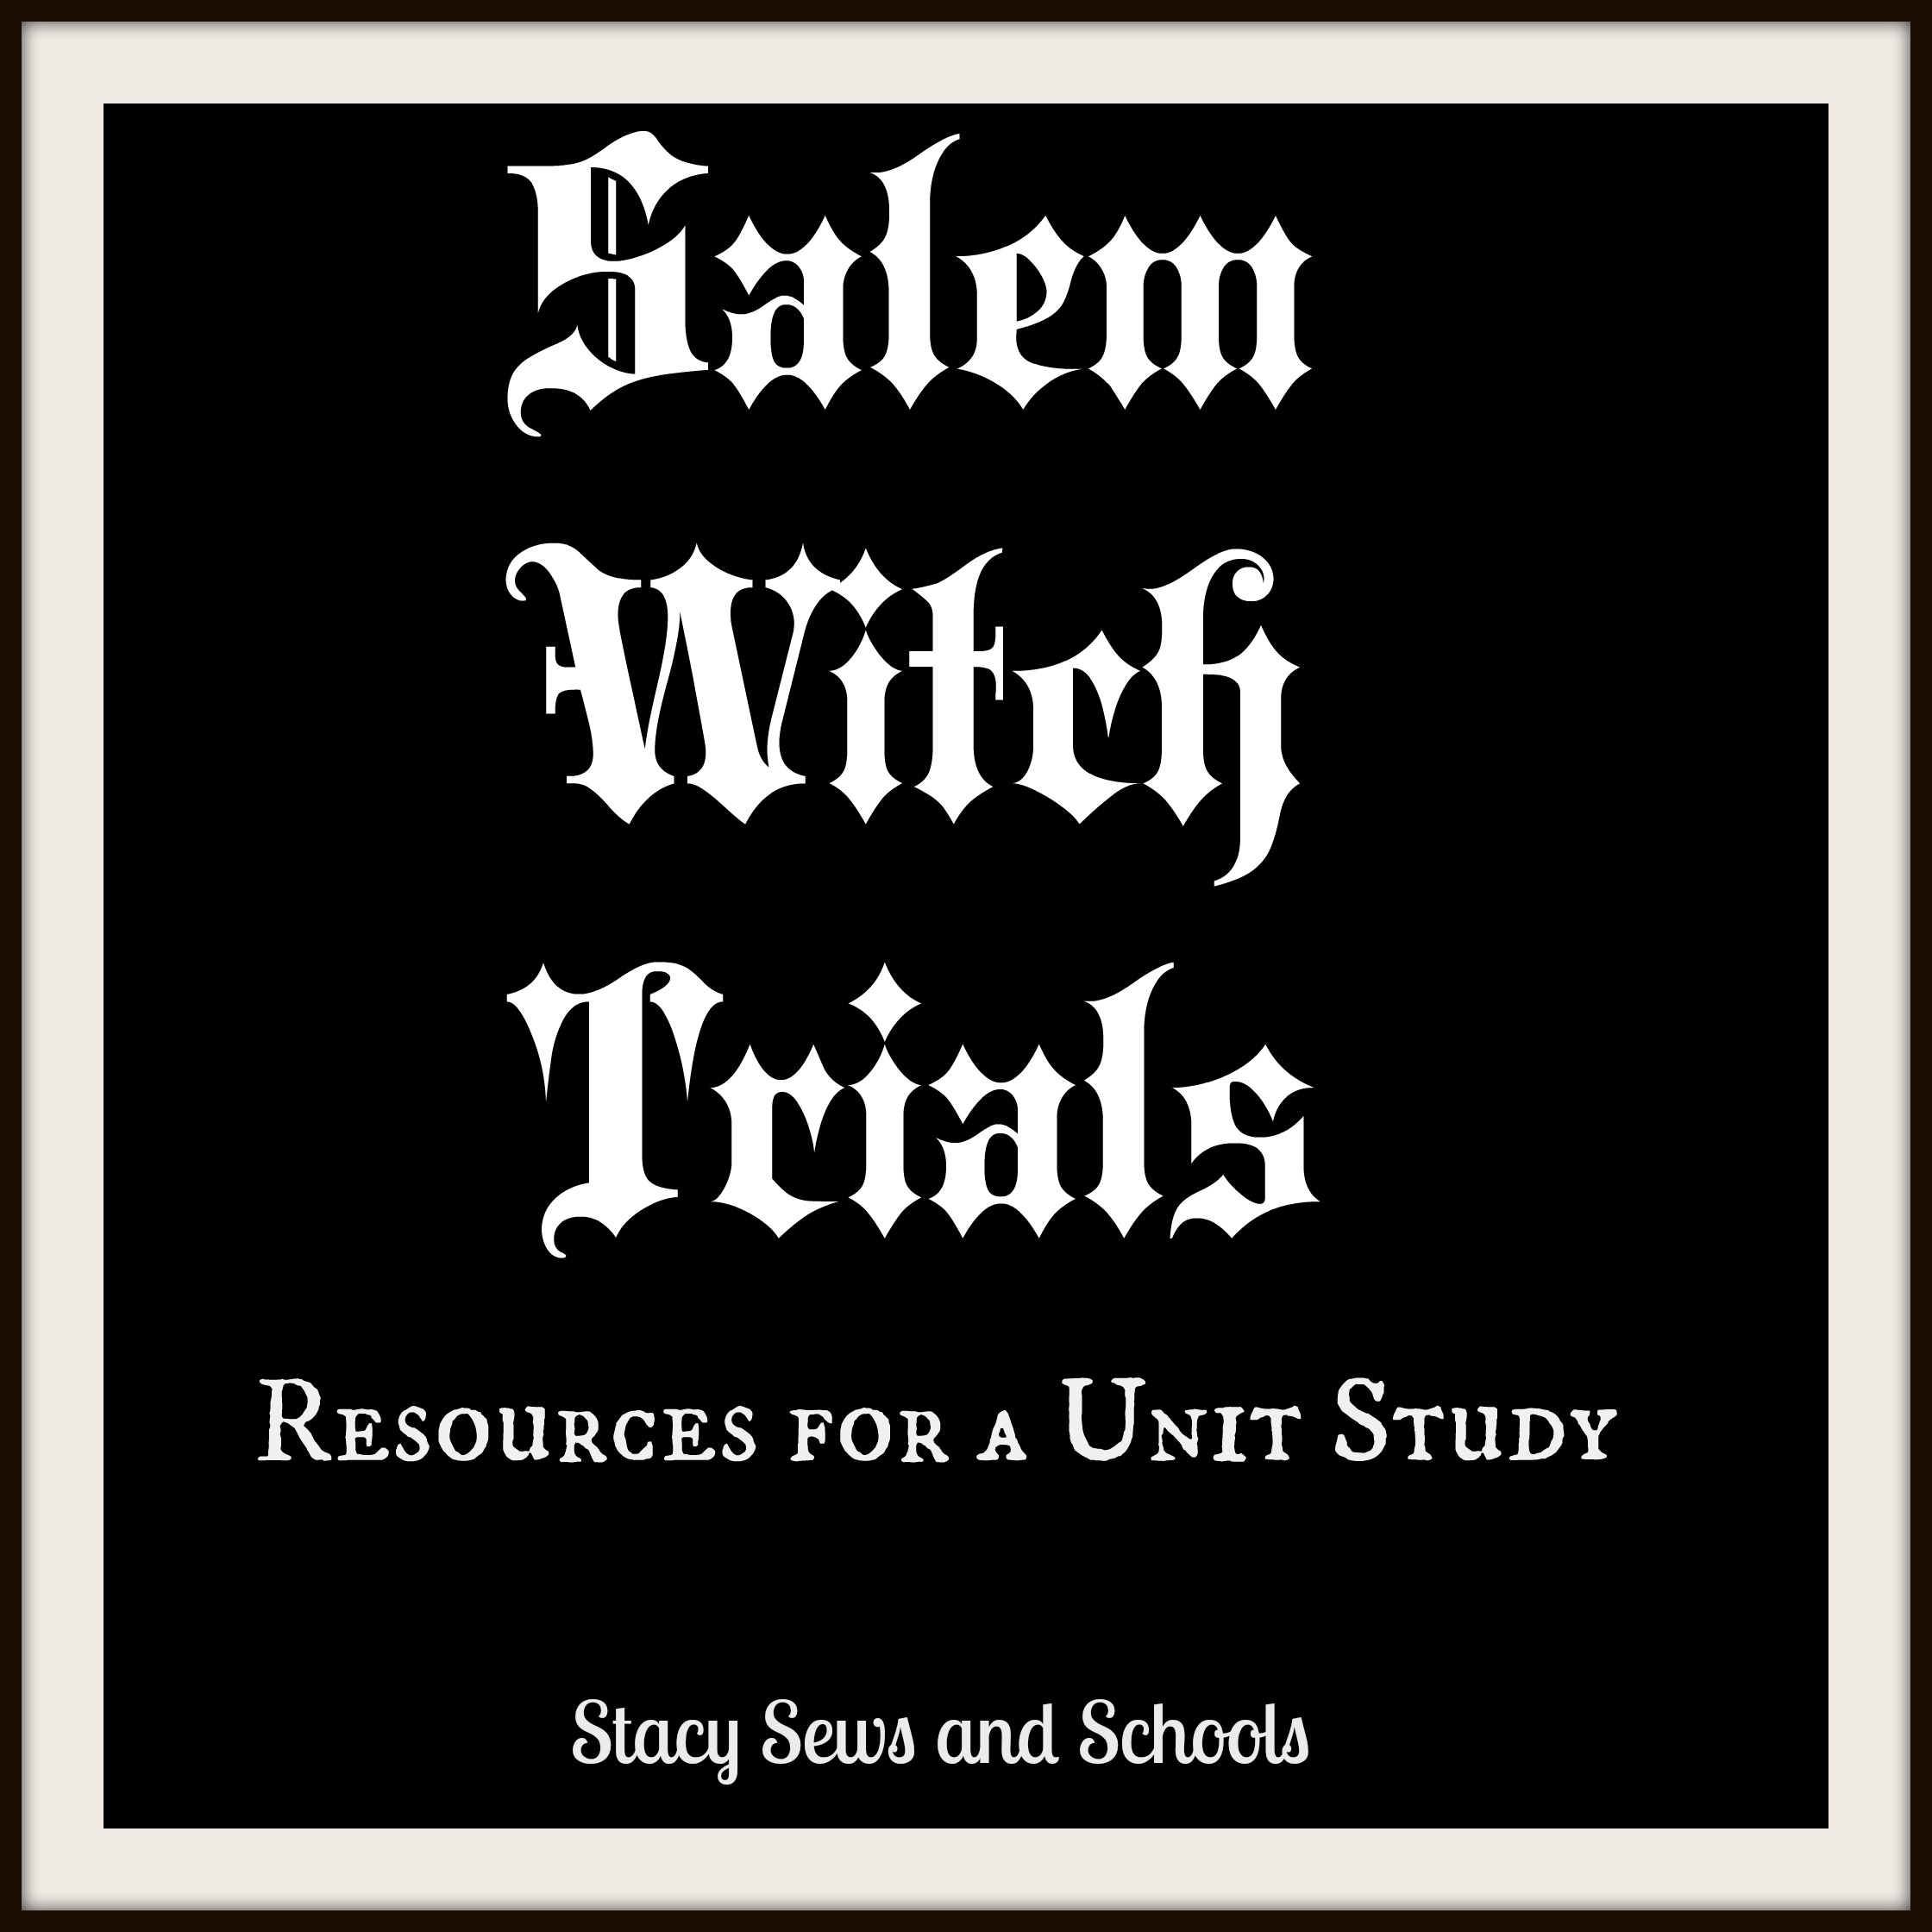 the salem witch trials resources for a unit study stacy sews and schools. Black Bedroom Furniture Sets. Home Design Ideas